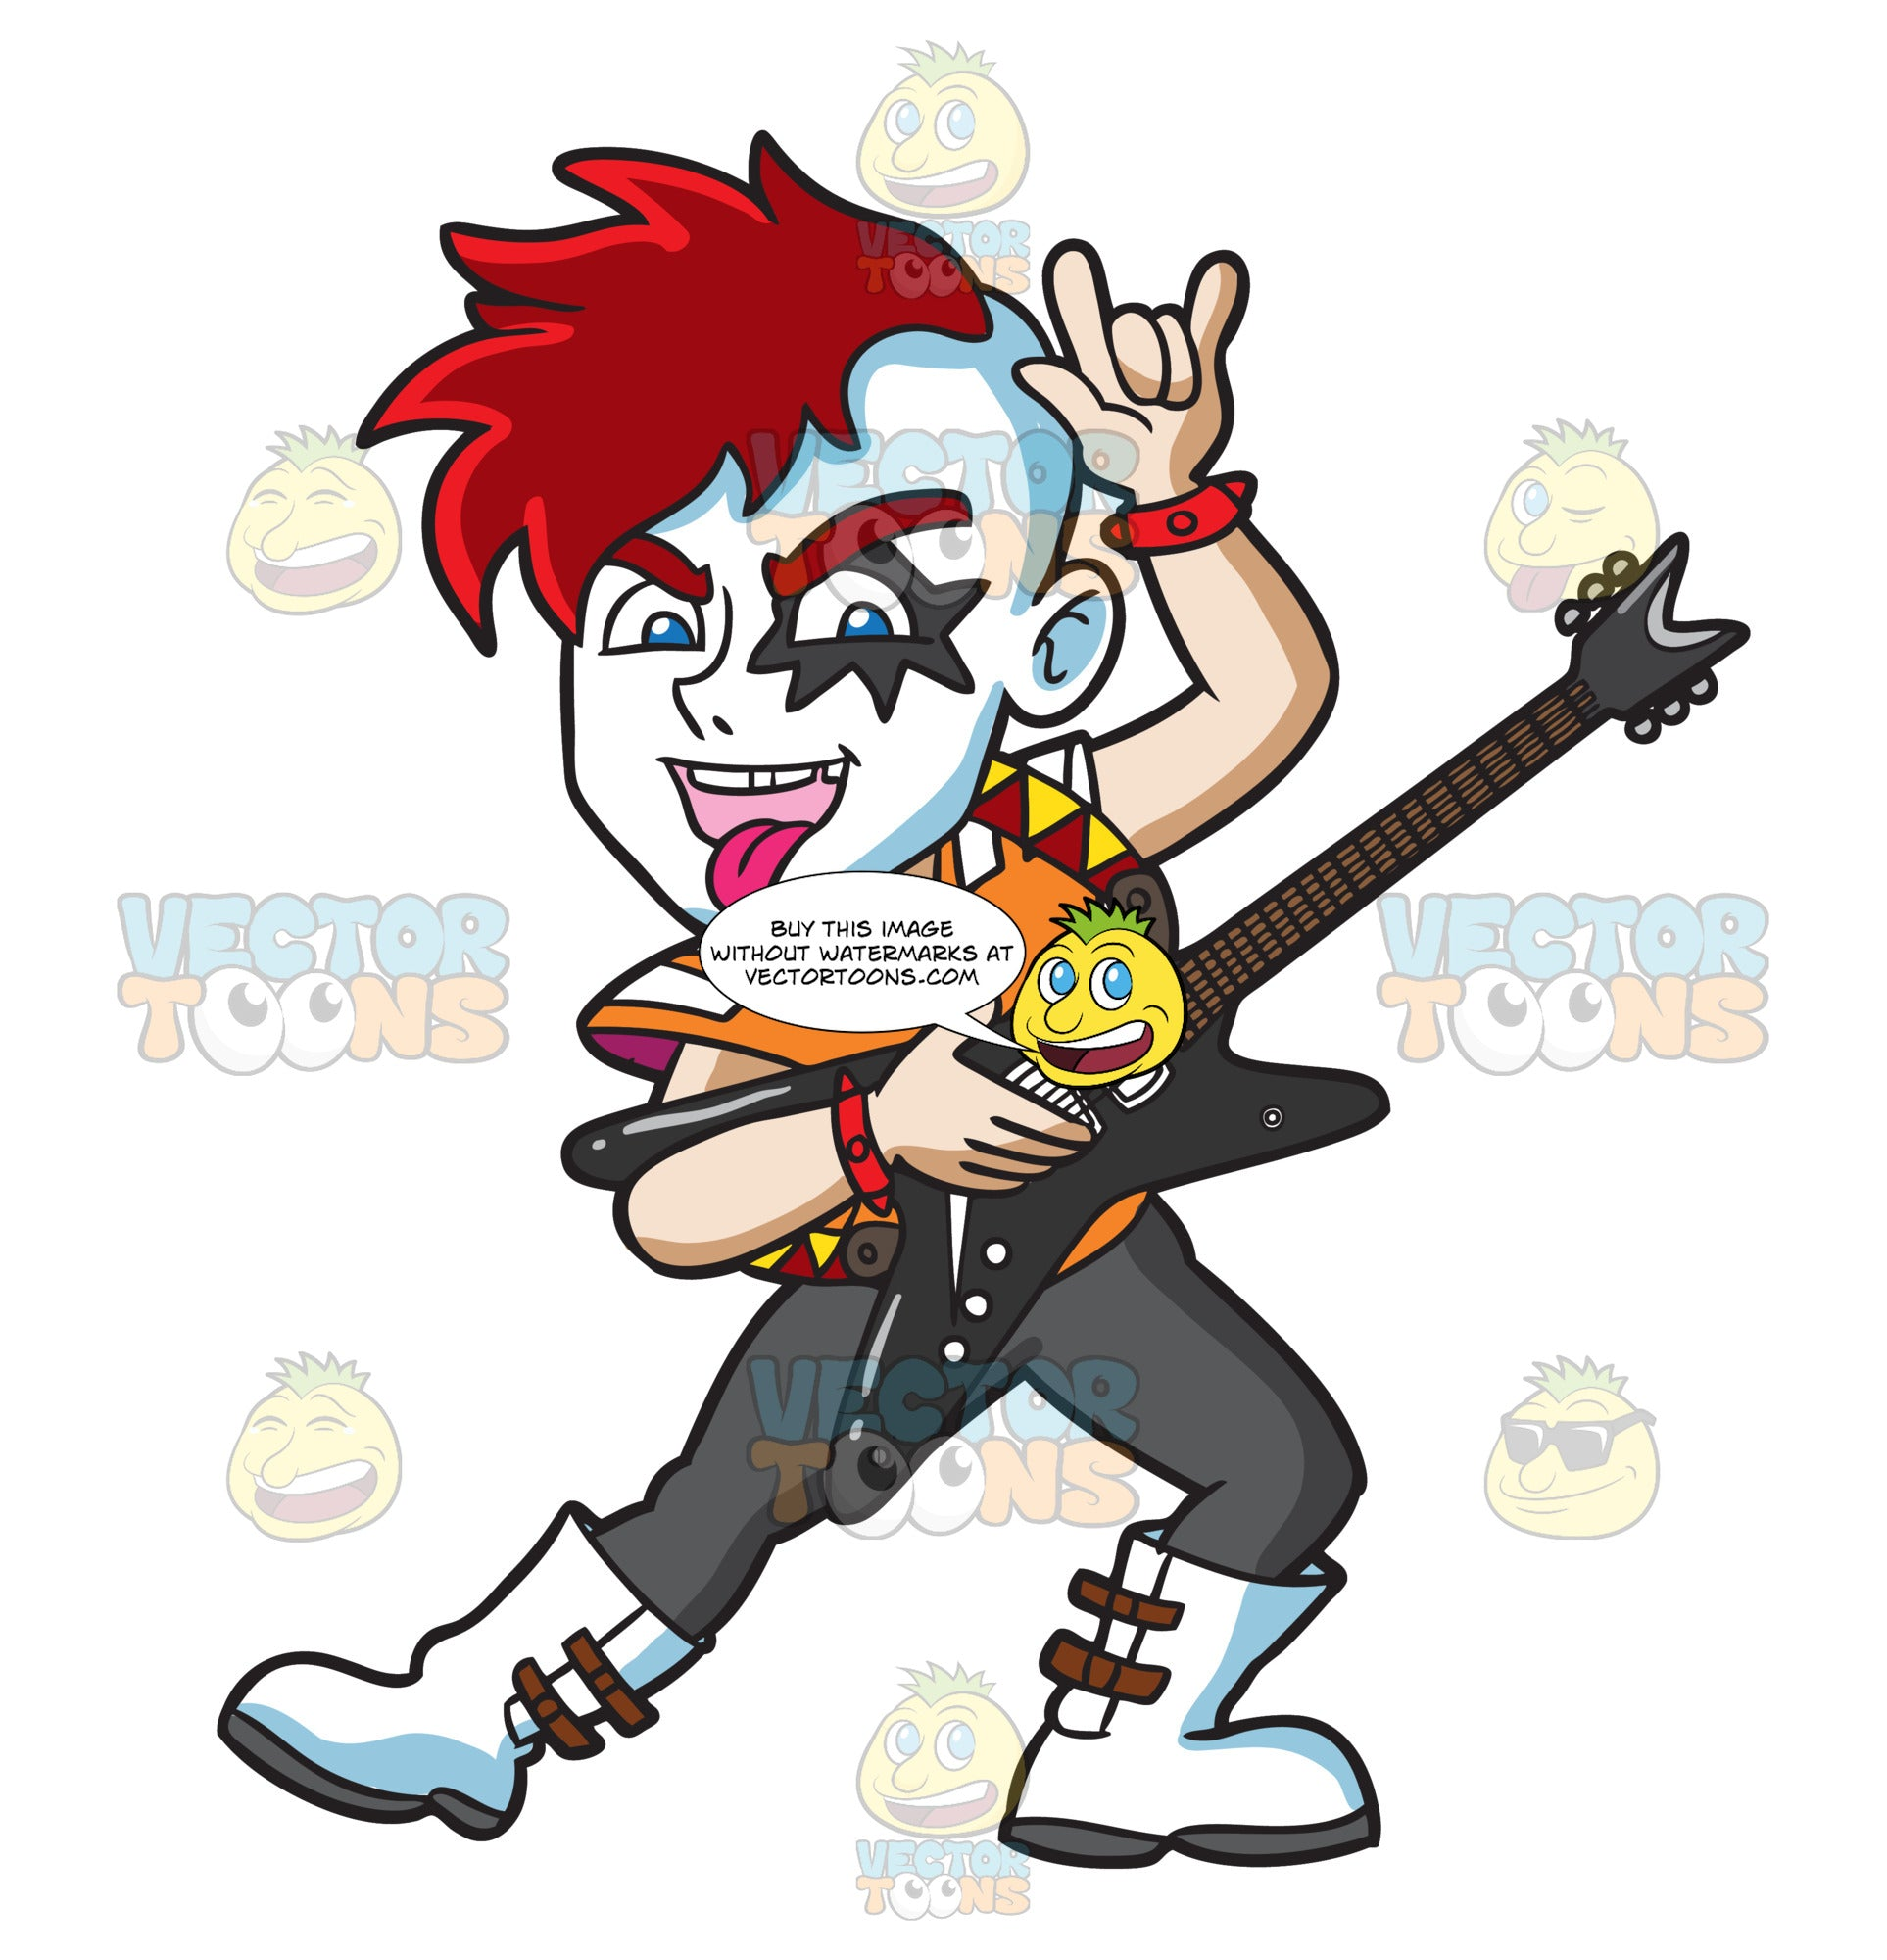 A Glam Rock Guitarist